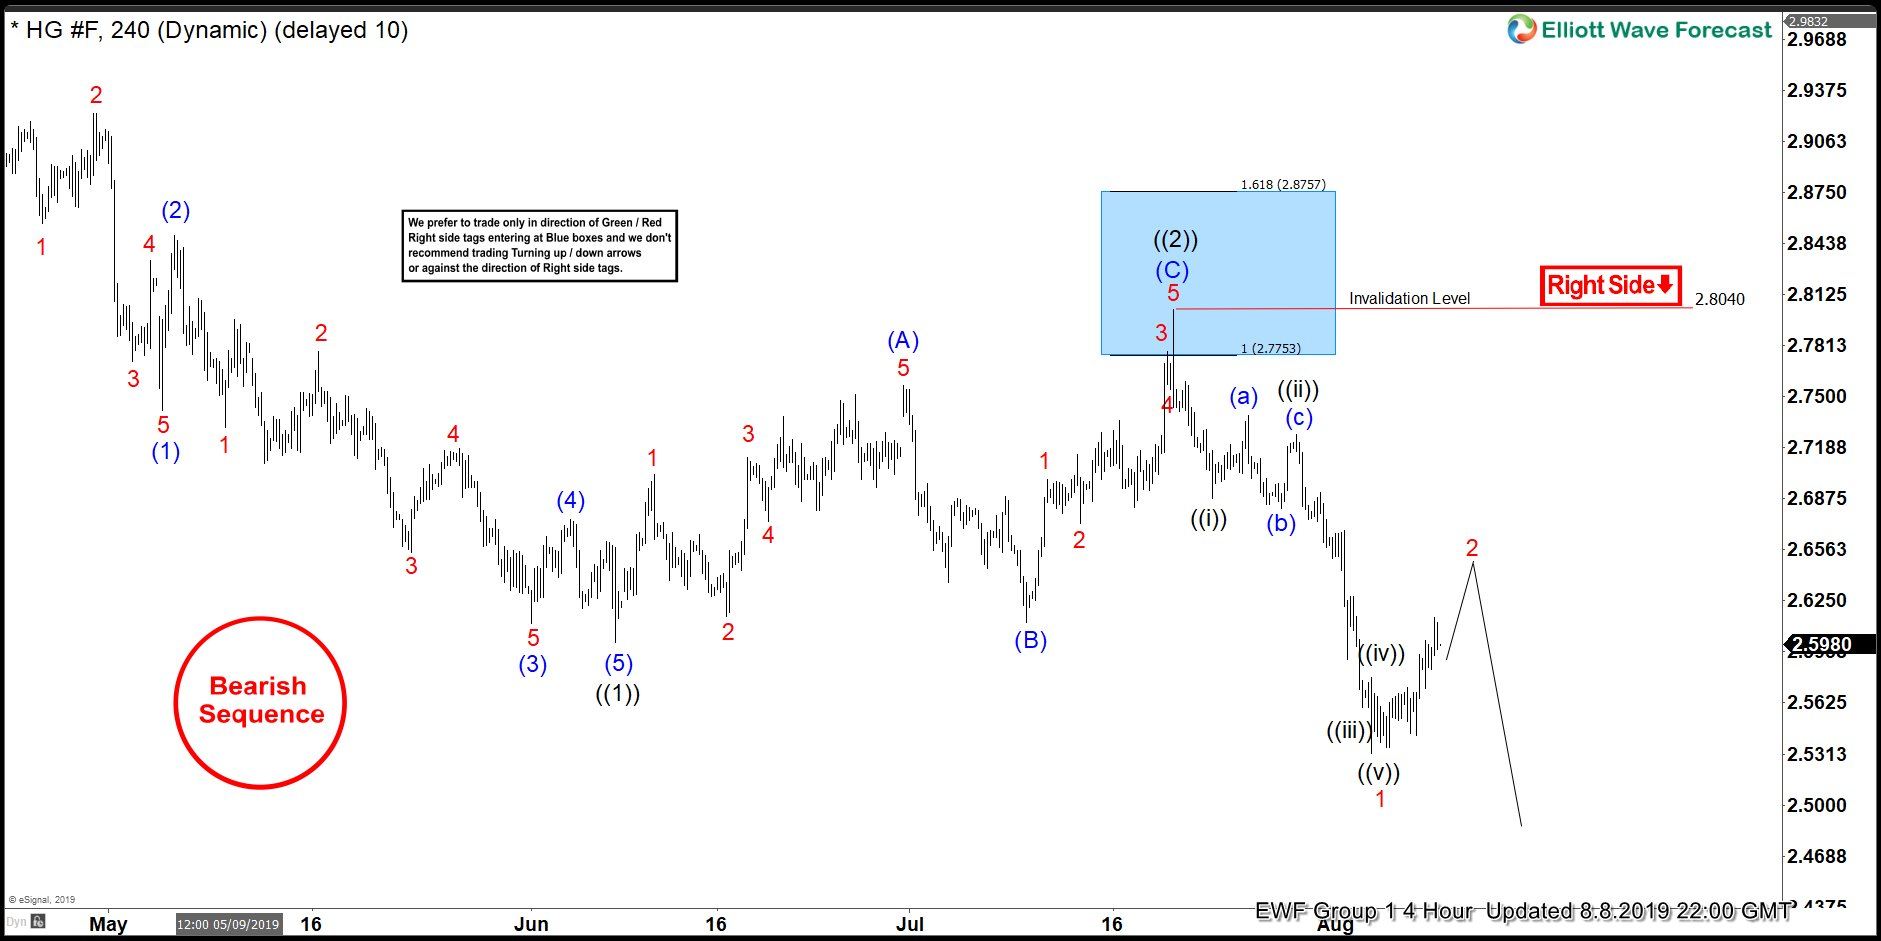 HG_F (Copper) 4 Hour Elliott Wave Updated 8.8.2019